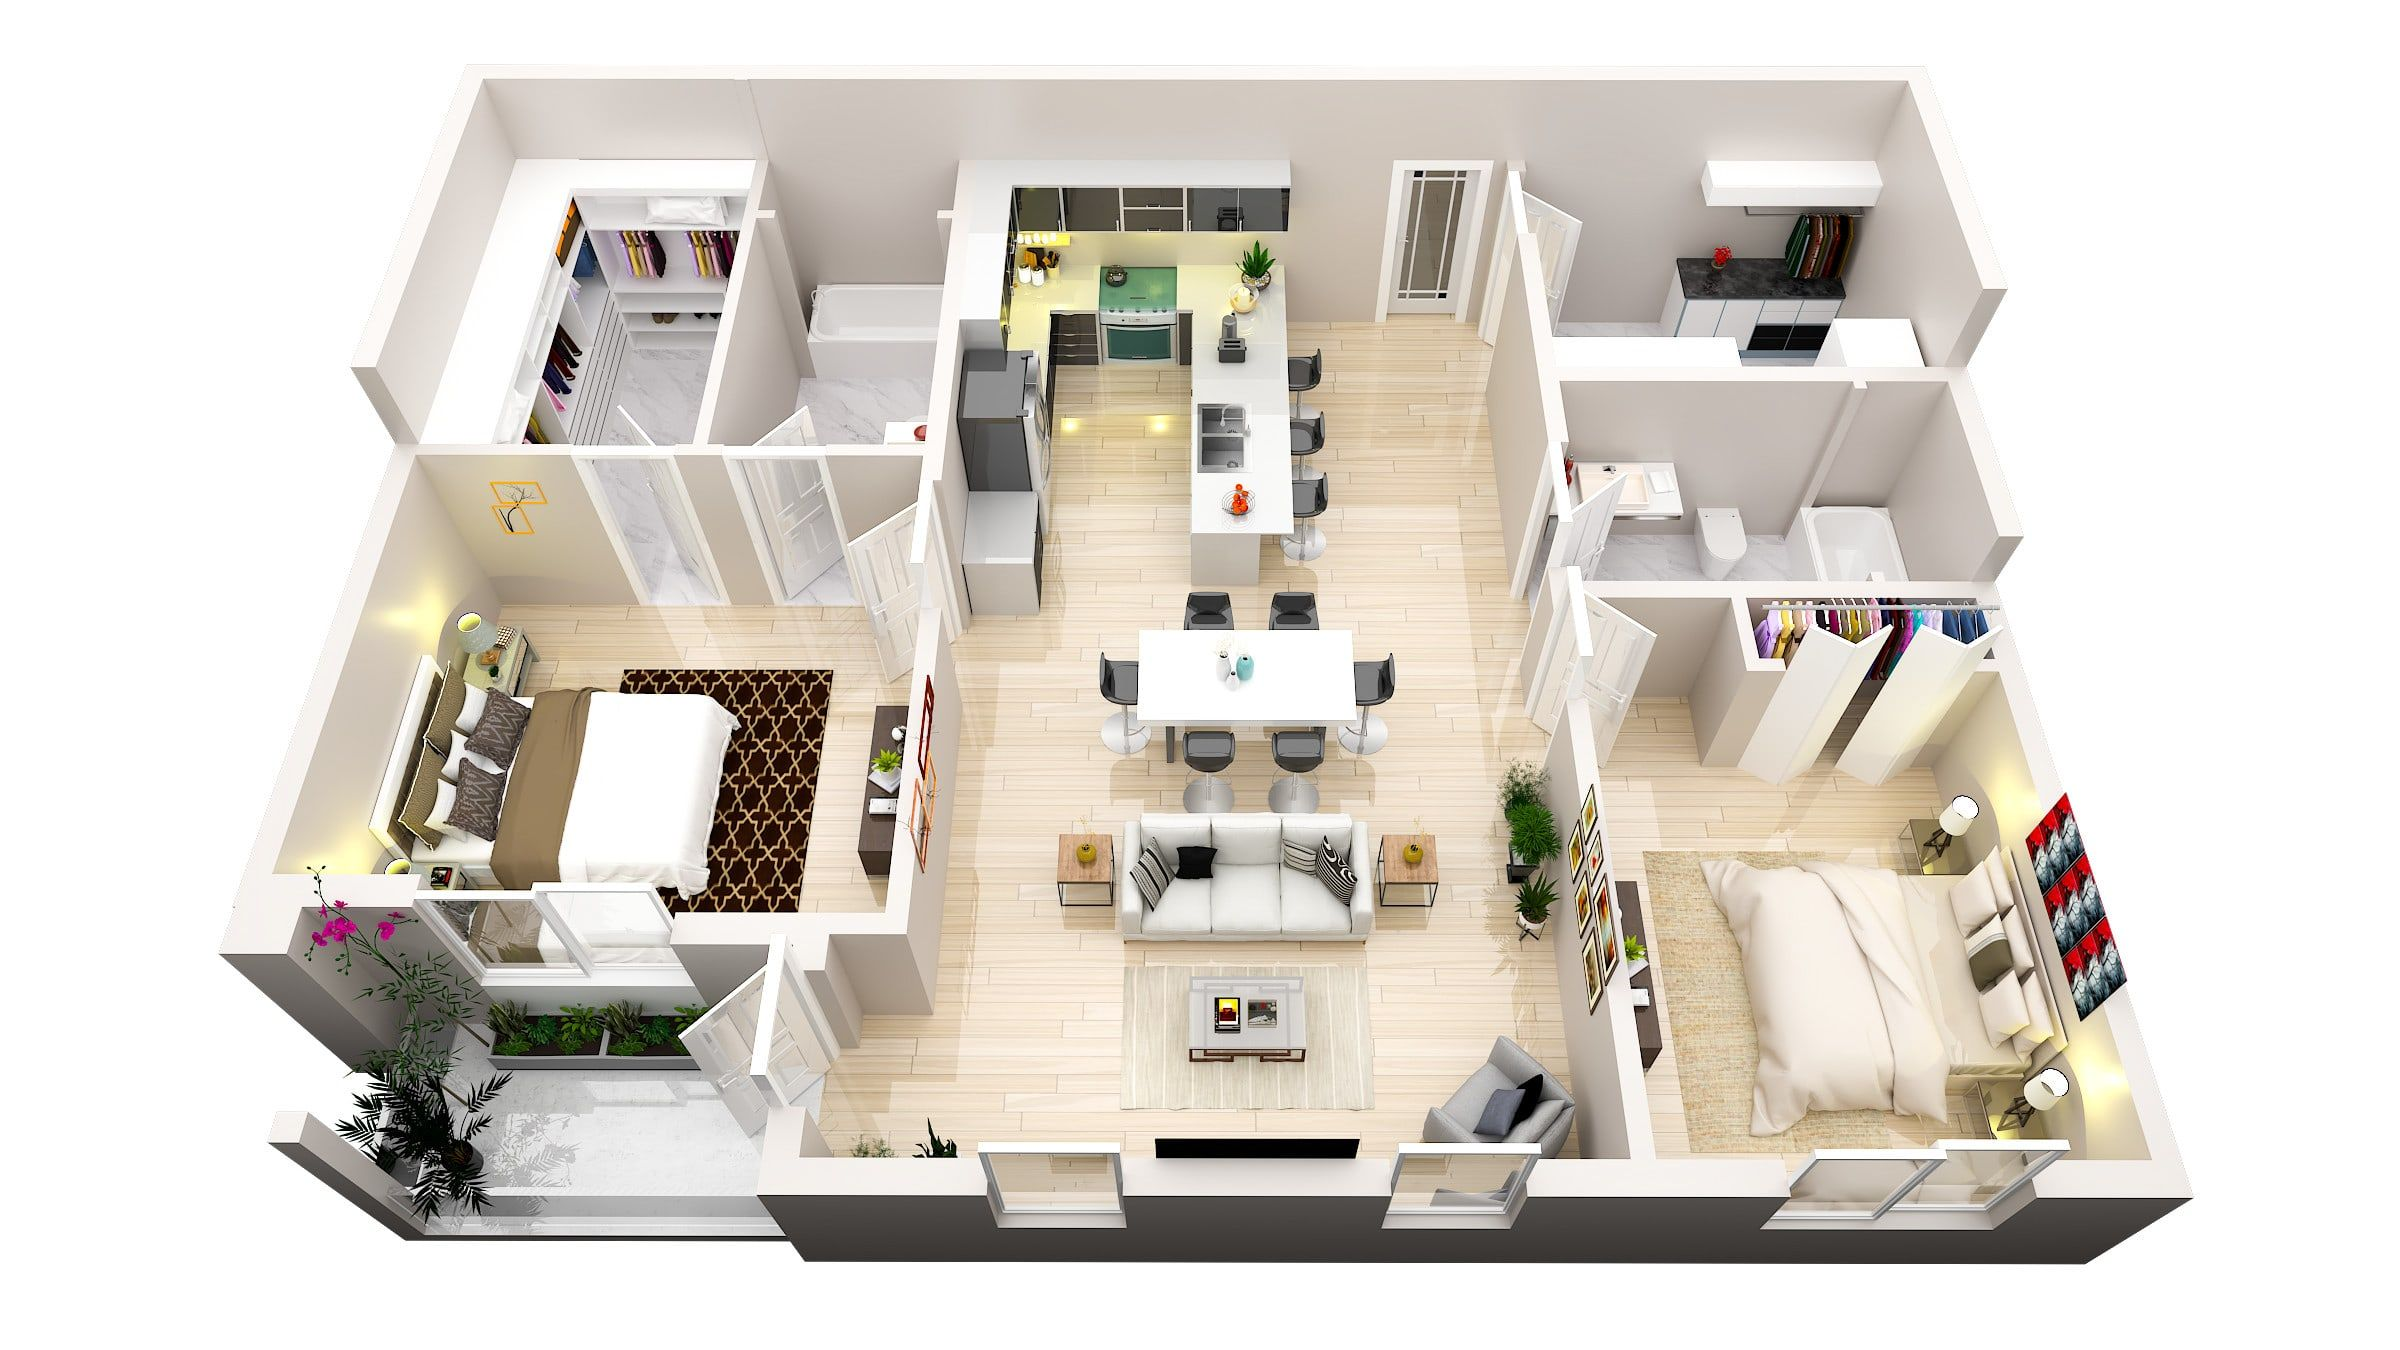 I Will Make 3d Floor Plan 2d Floorplan Rendering In 2020 Small House Design Plans Interior Architecture Design Interior Rendering